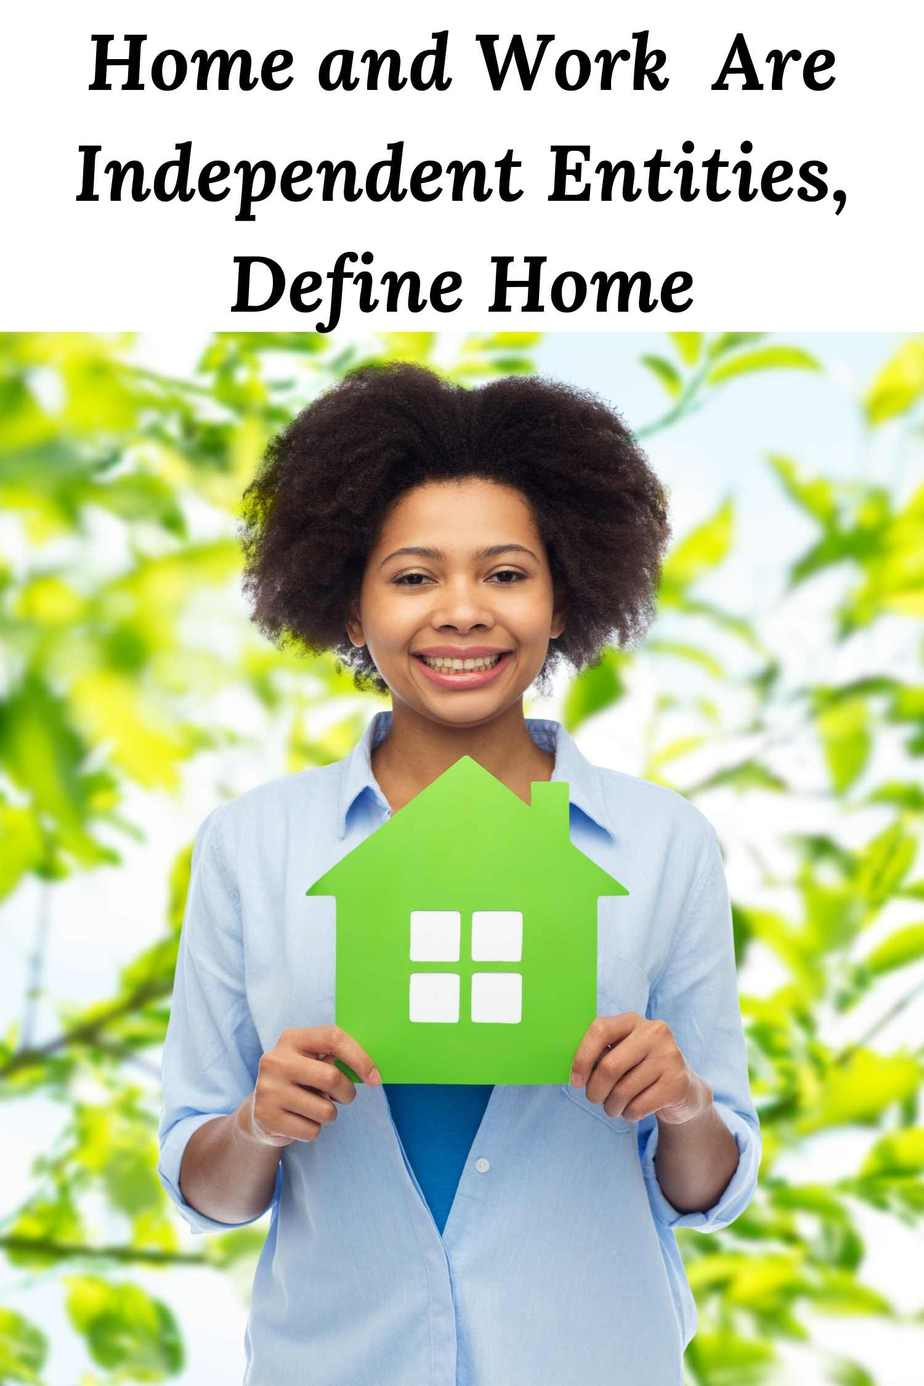 Home and work are independent entities, define home